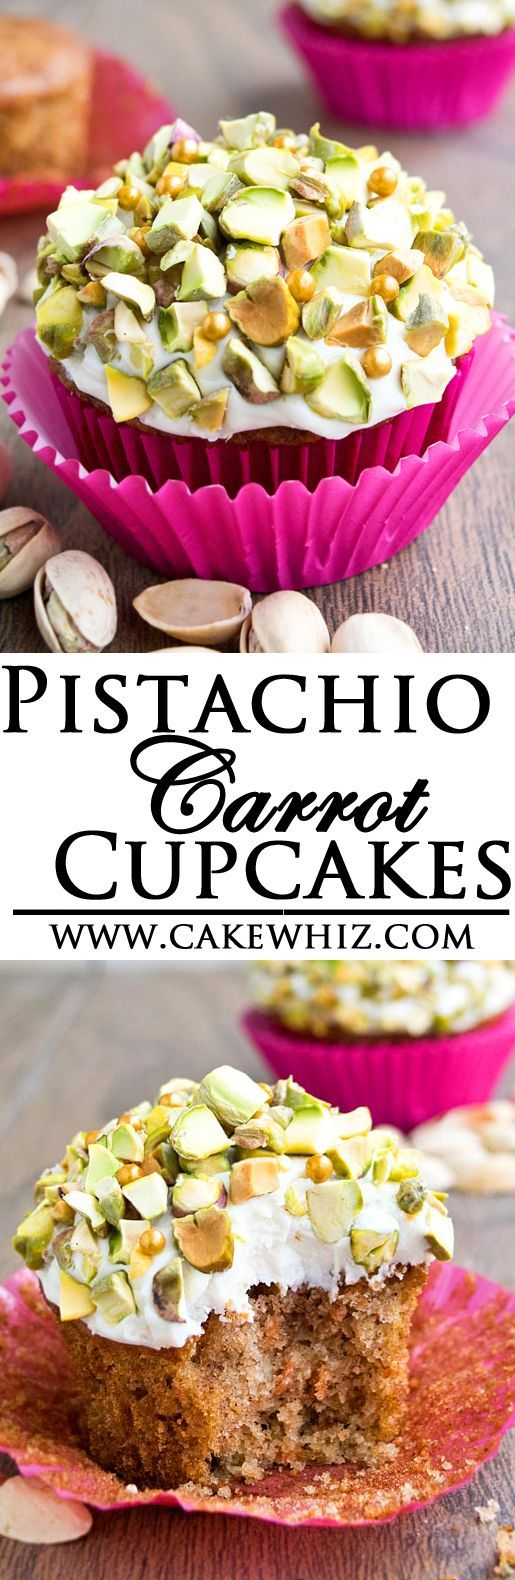 These tender and spiced PISTACHIO CARROT CUPCAKES with cream cheese icing have all the flavors of a classic carrot cake but in cupcake form. Easy to make and great as a dessert or snack! (Ad) From cakewhiz.com